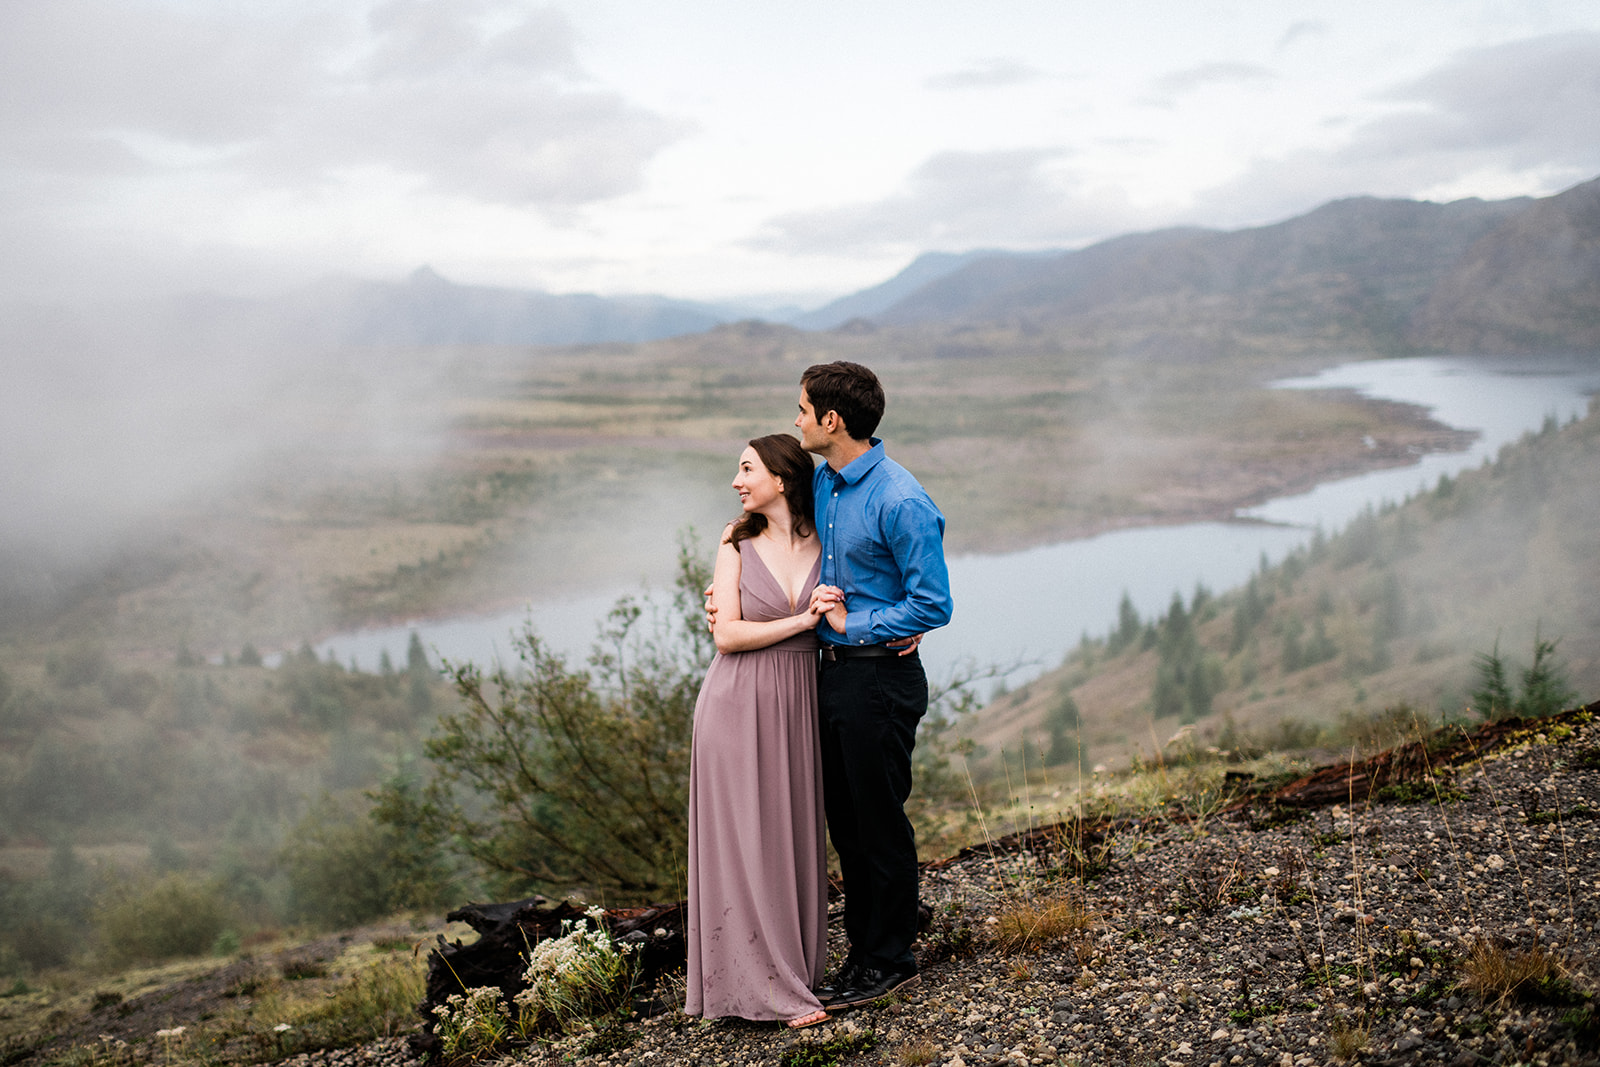 Foggy, Sunrise Engagement Session on Mt St Helens, WA. Image by Forthright Photo.